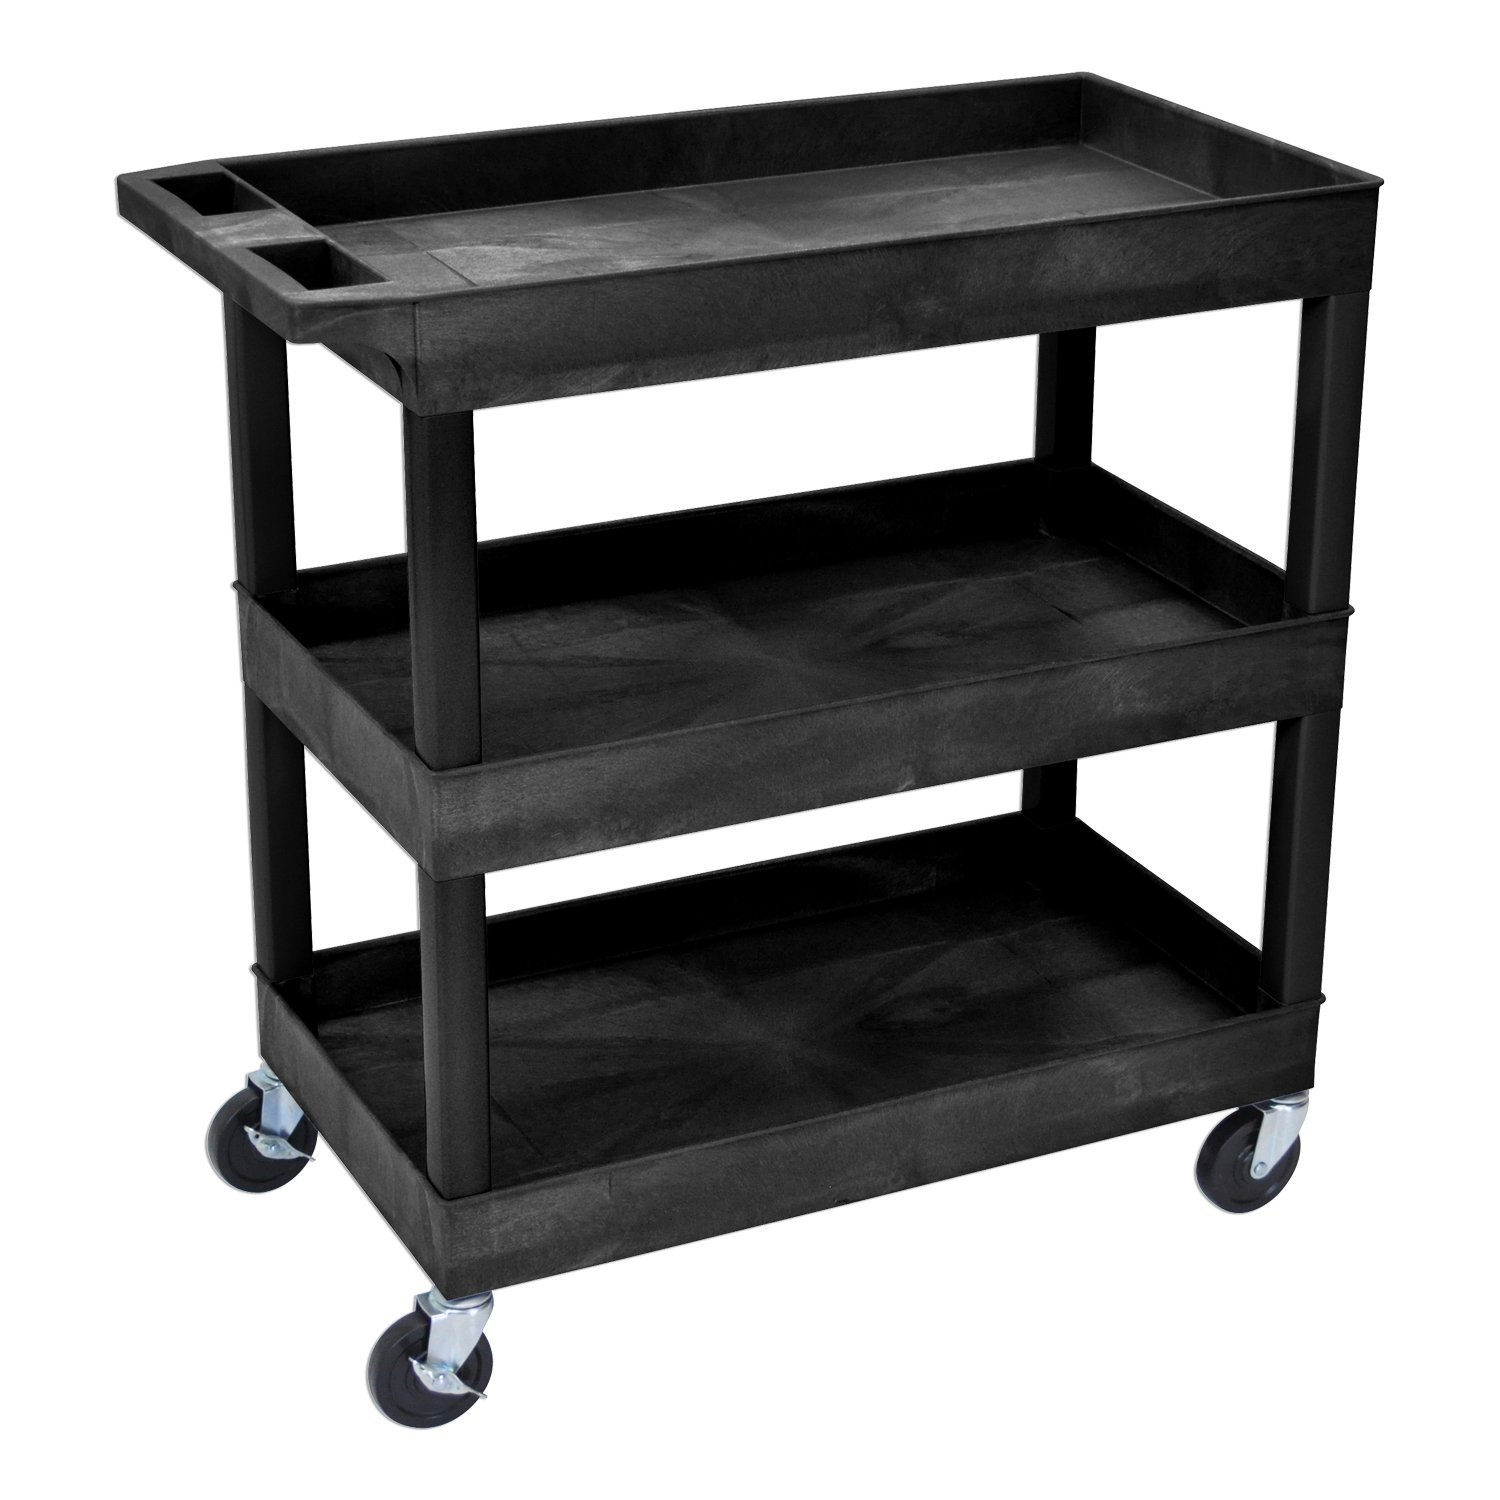 Offex 32''W x 18''D Rolling 3 Shelf Tub Storage Utility Cart with 5'' Casters - Black by Offex